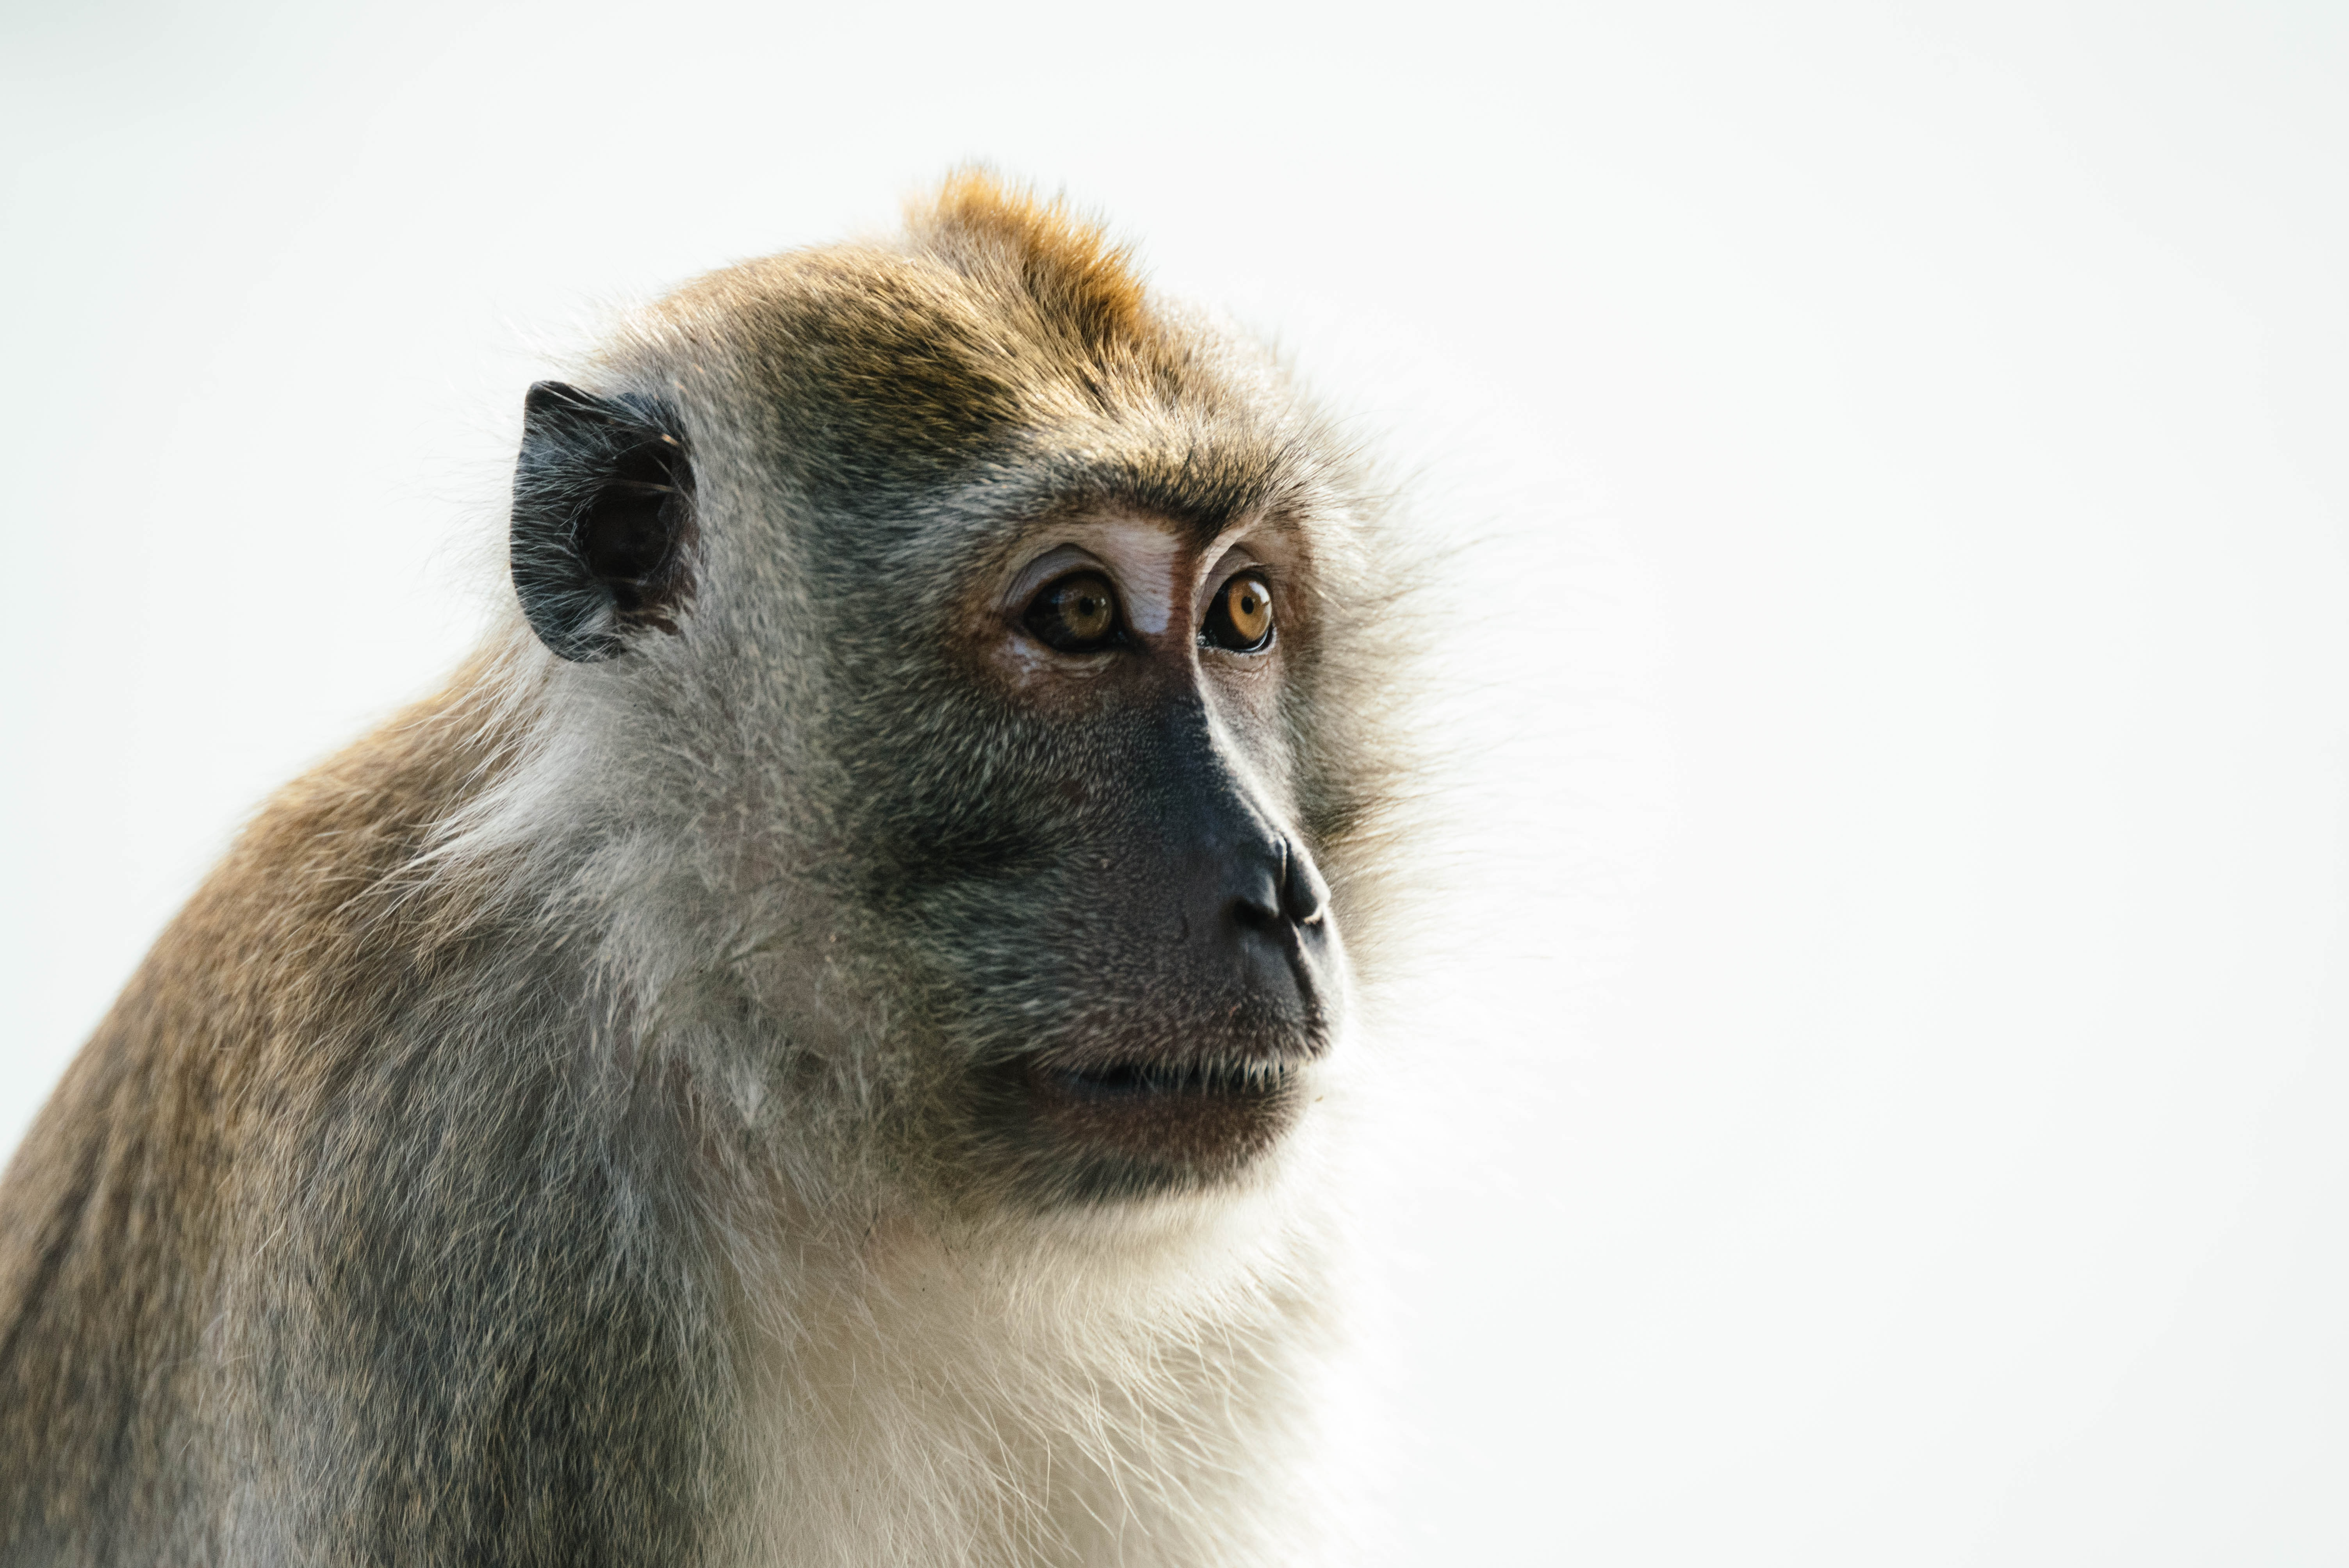 close-up photo of brown monkey